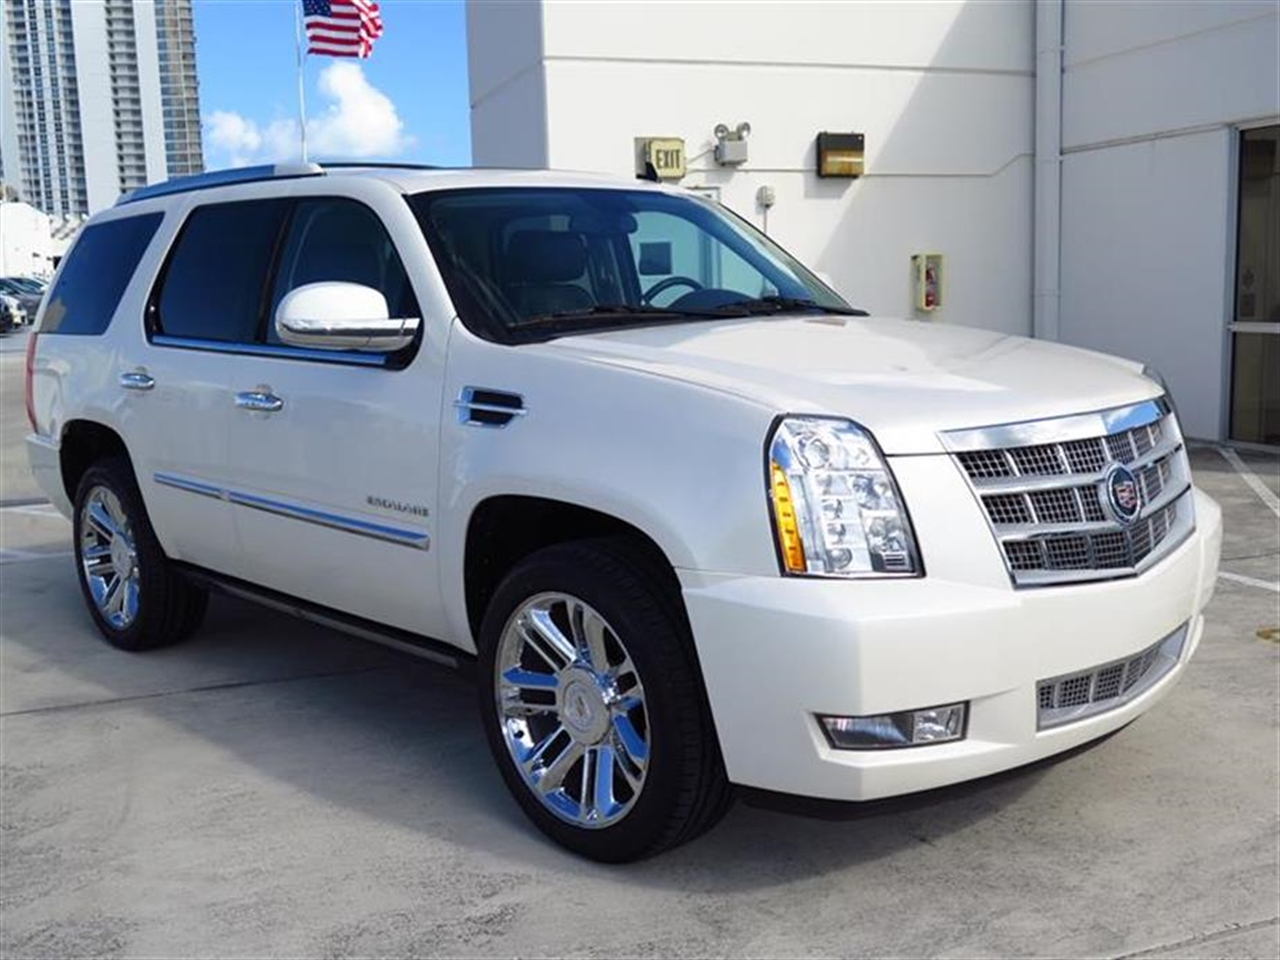 2012 CADILLAC ESCALADE 2WD 4dr Platinum Edition 30145 miles Climate control rear air conditioning